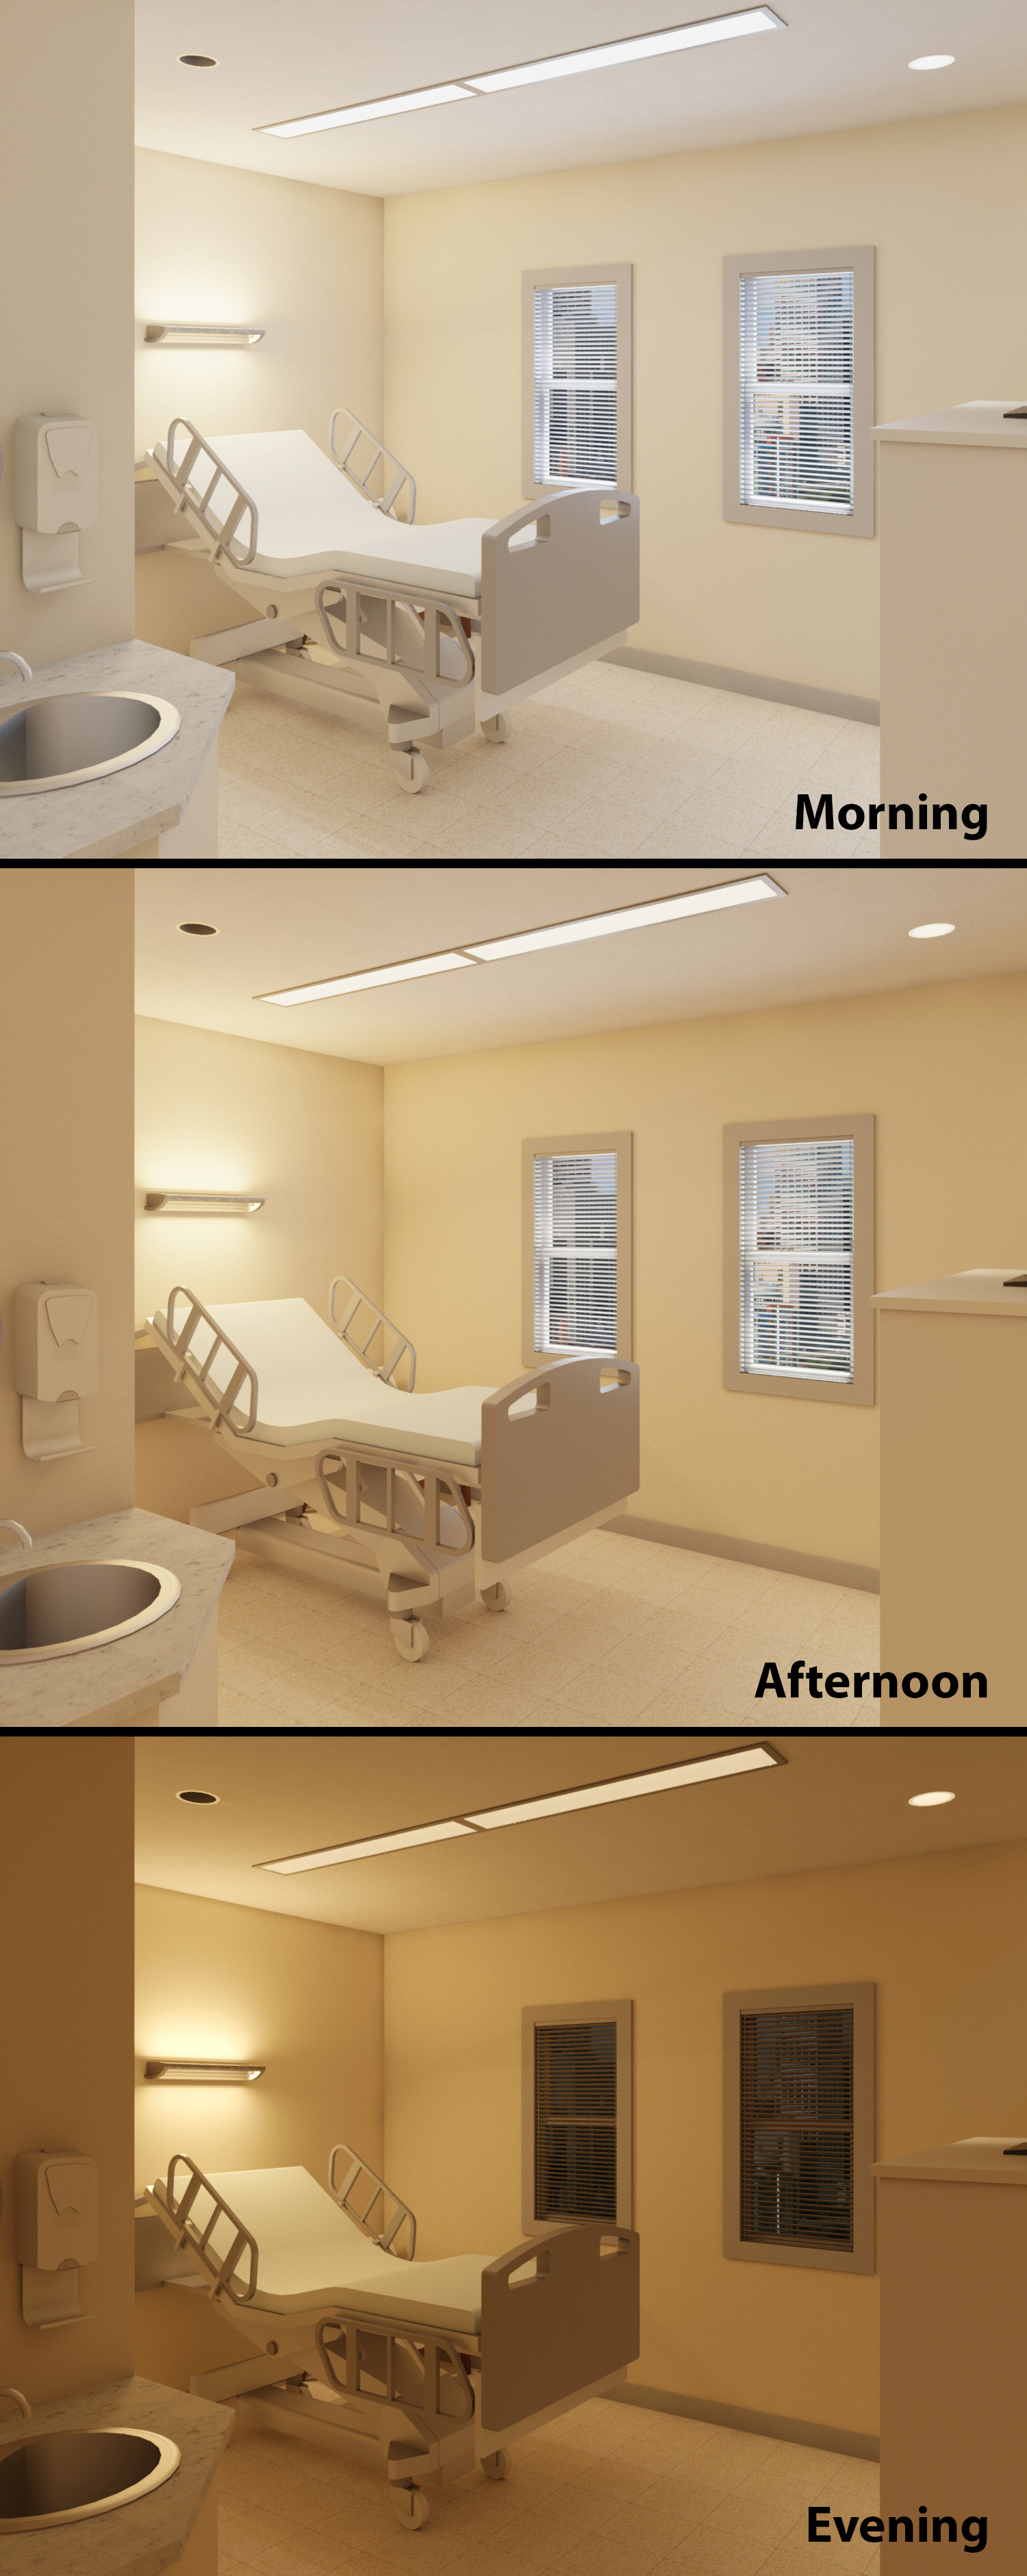 Patient room: morning, afternoon, evening